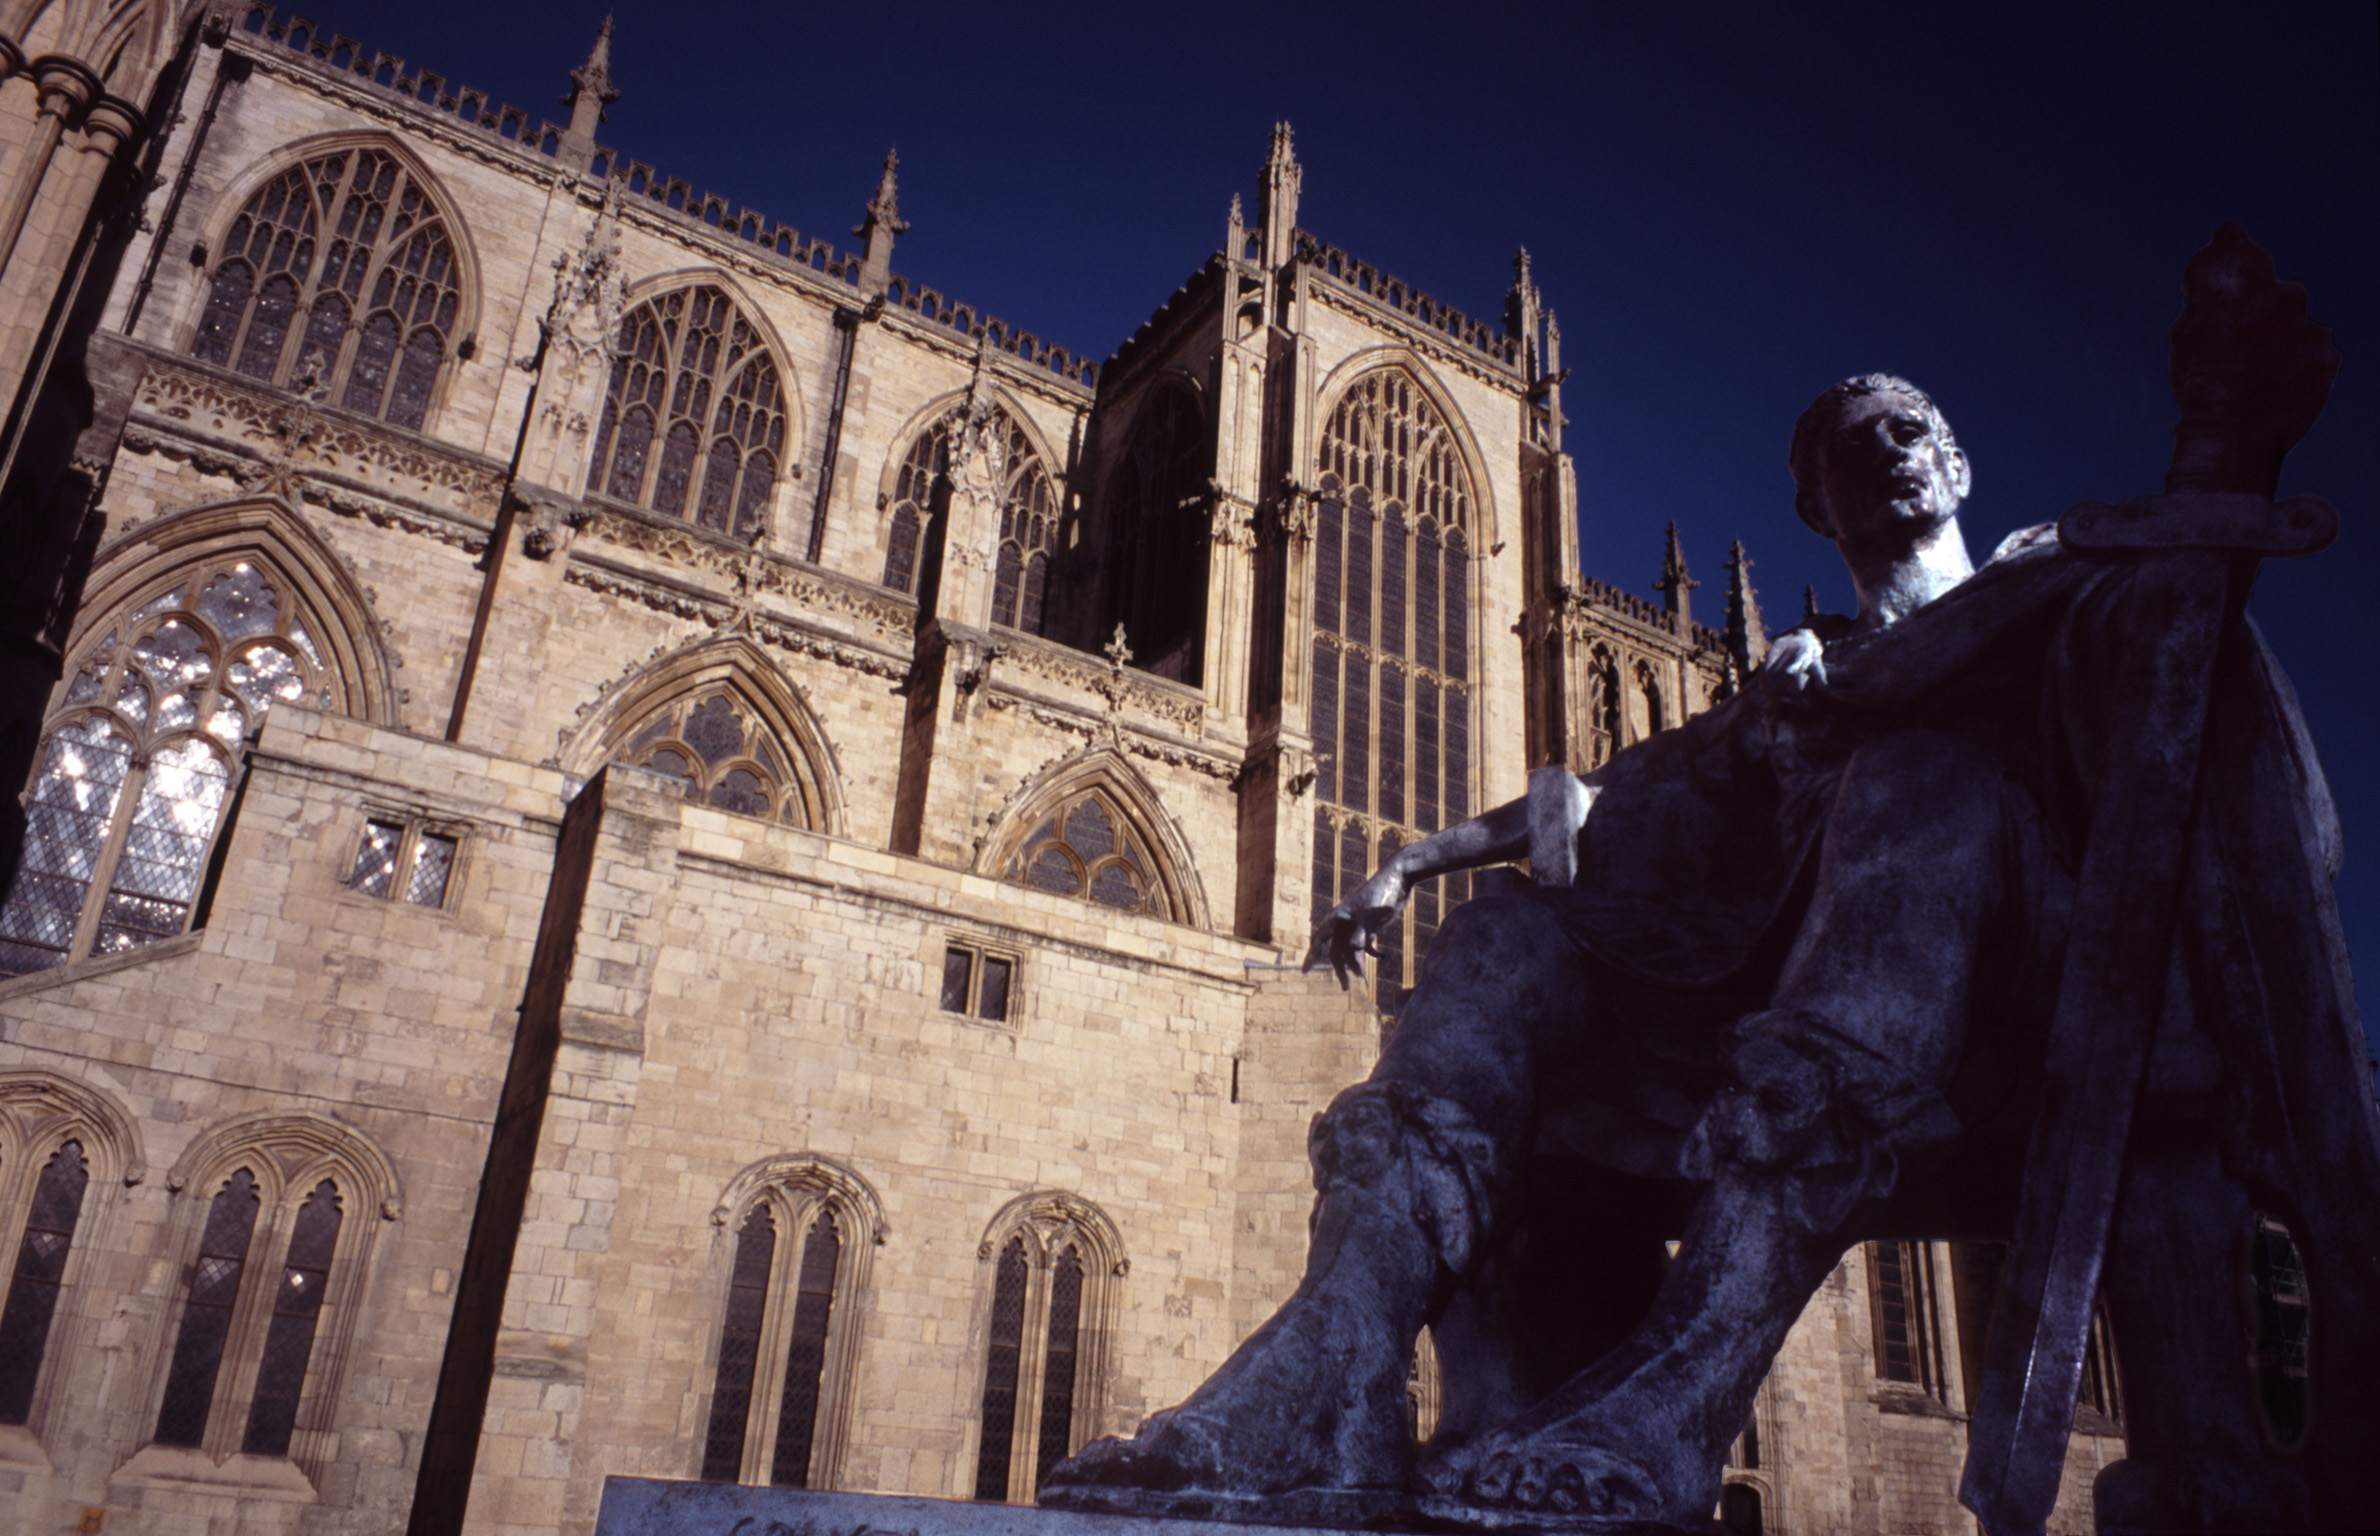 Low Angle Close Up of Statue of Constantine the Great Outside York Minster Cathedral, York, England